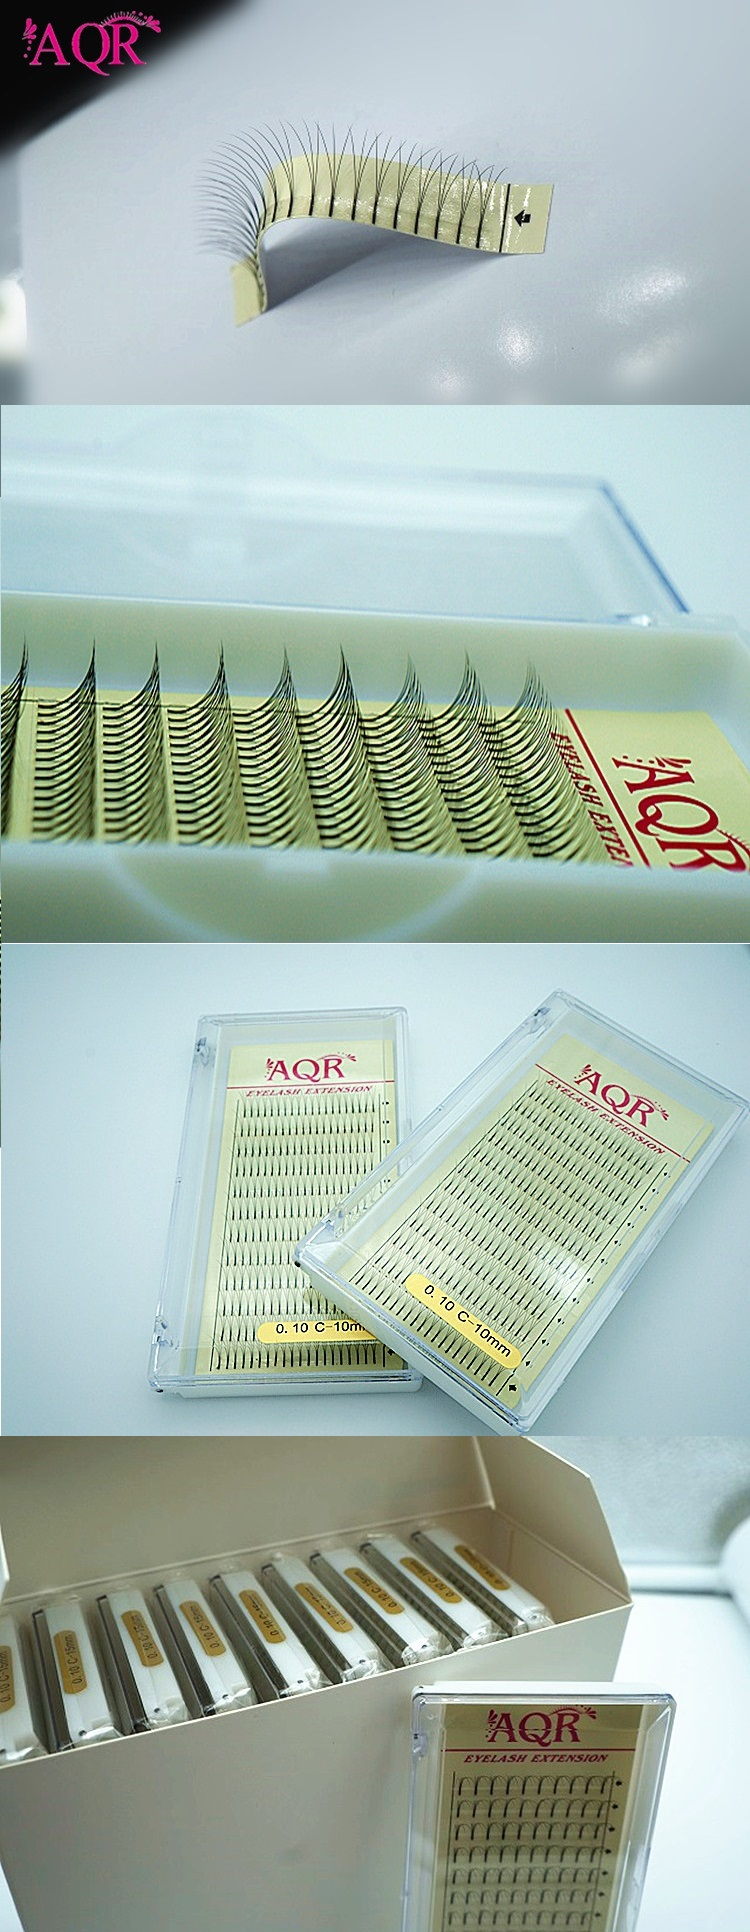 factory price plastic tray 0.10mm C Dcurl W 2D3D4D5D russian volume eye lash